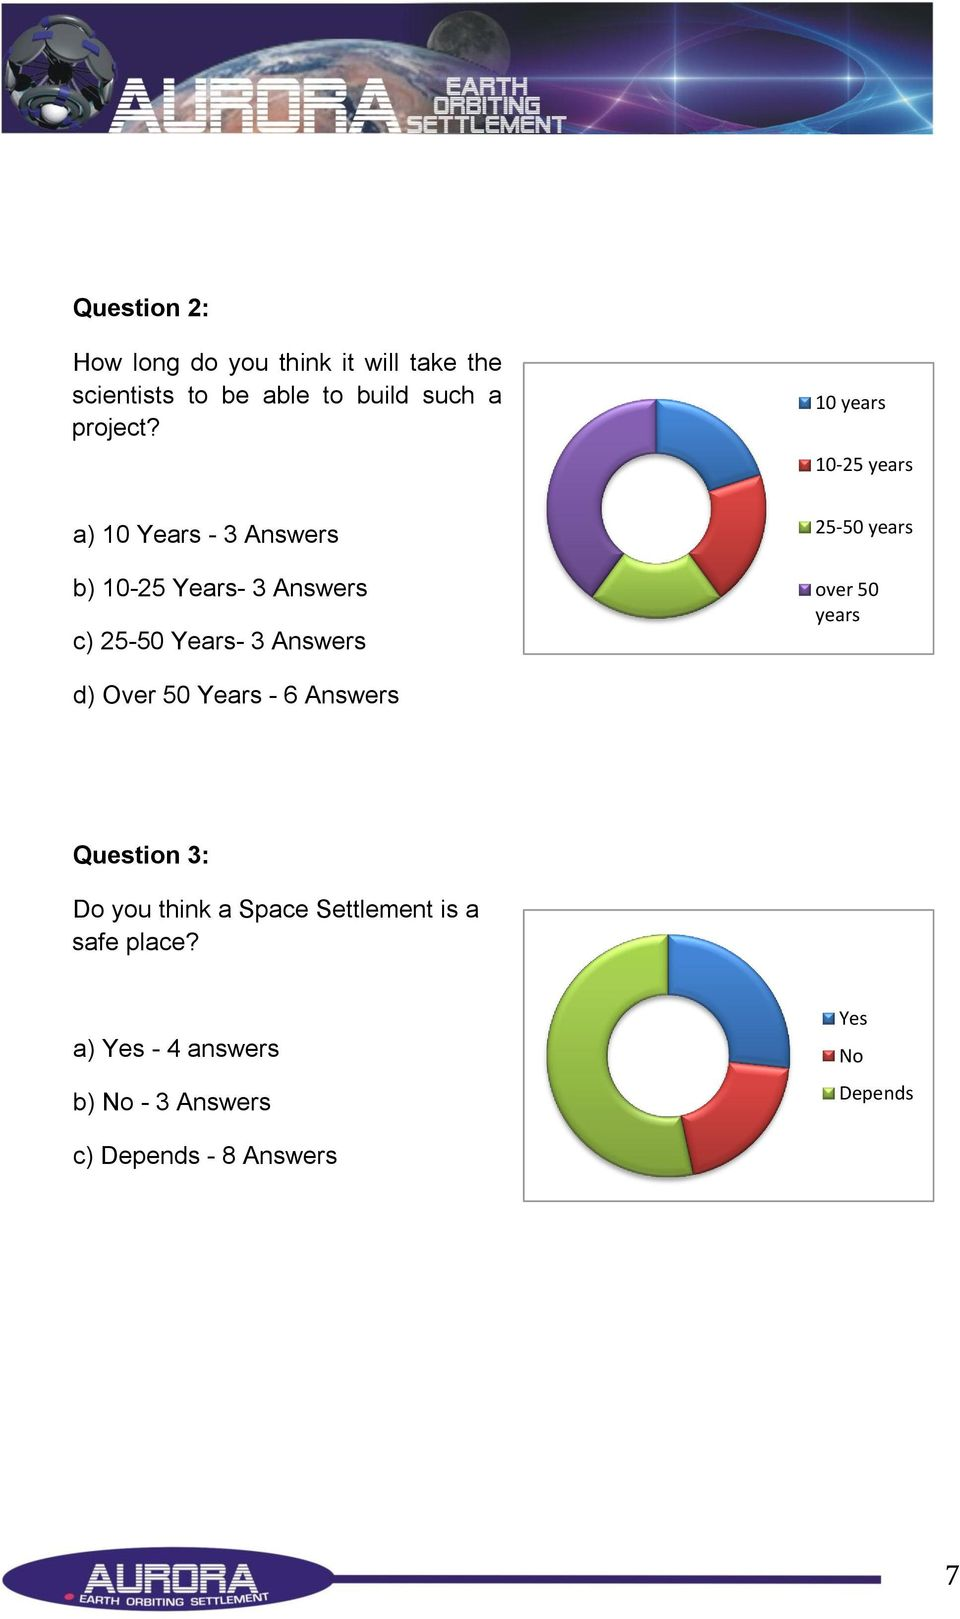 25-50 years over 50 years d) Over 50 Years - 6 Answers Question 3: Do you think a Space